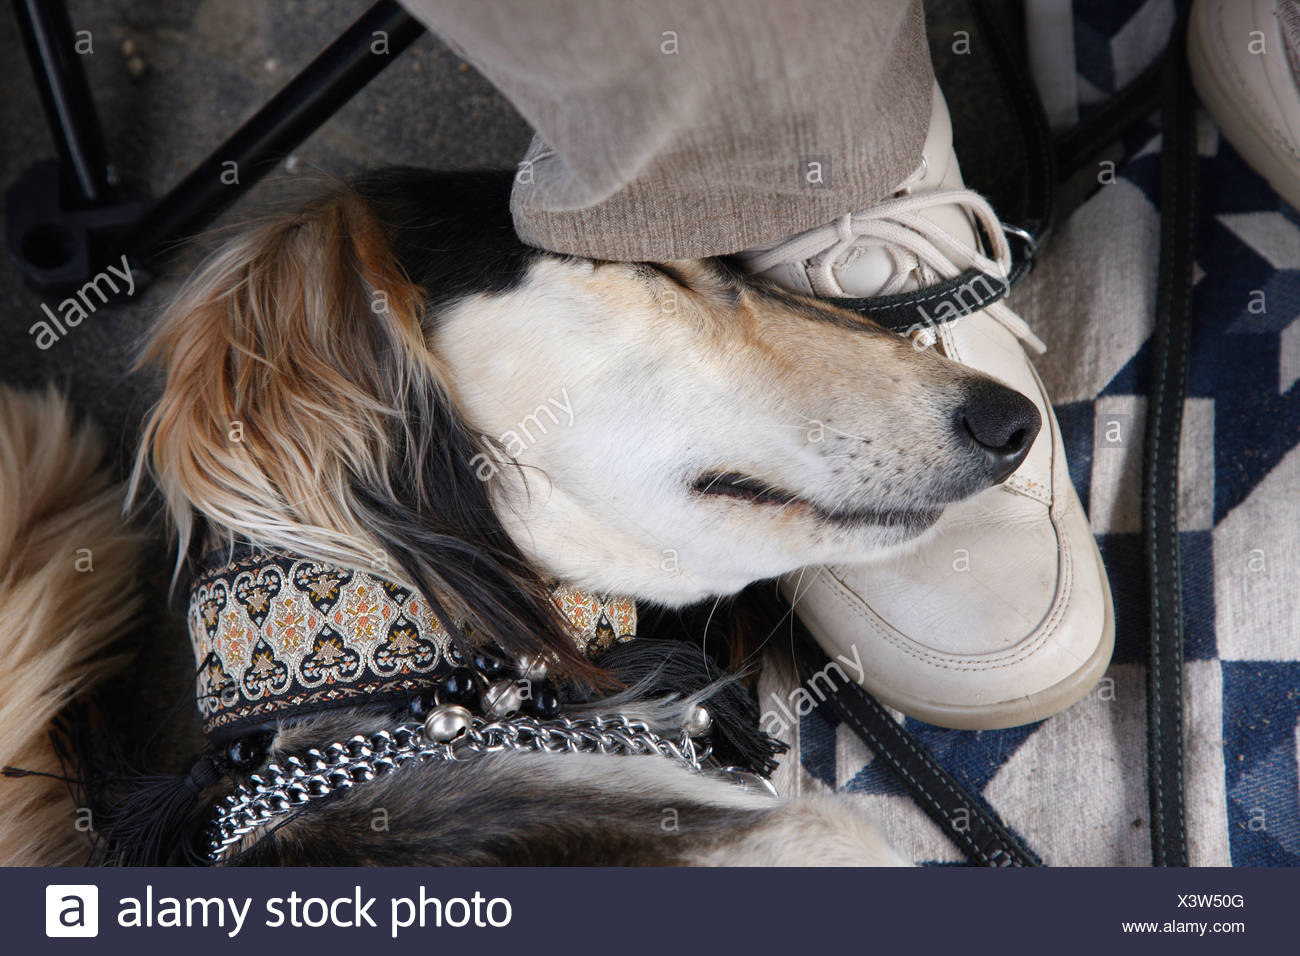 Saluki (Canis lupus f. familiaris), sleeping with the head on a shoe, Germany - Stock Image